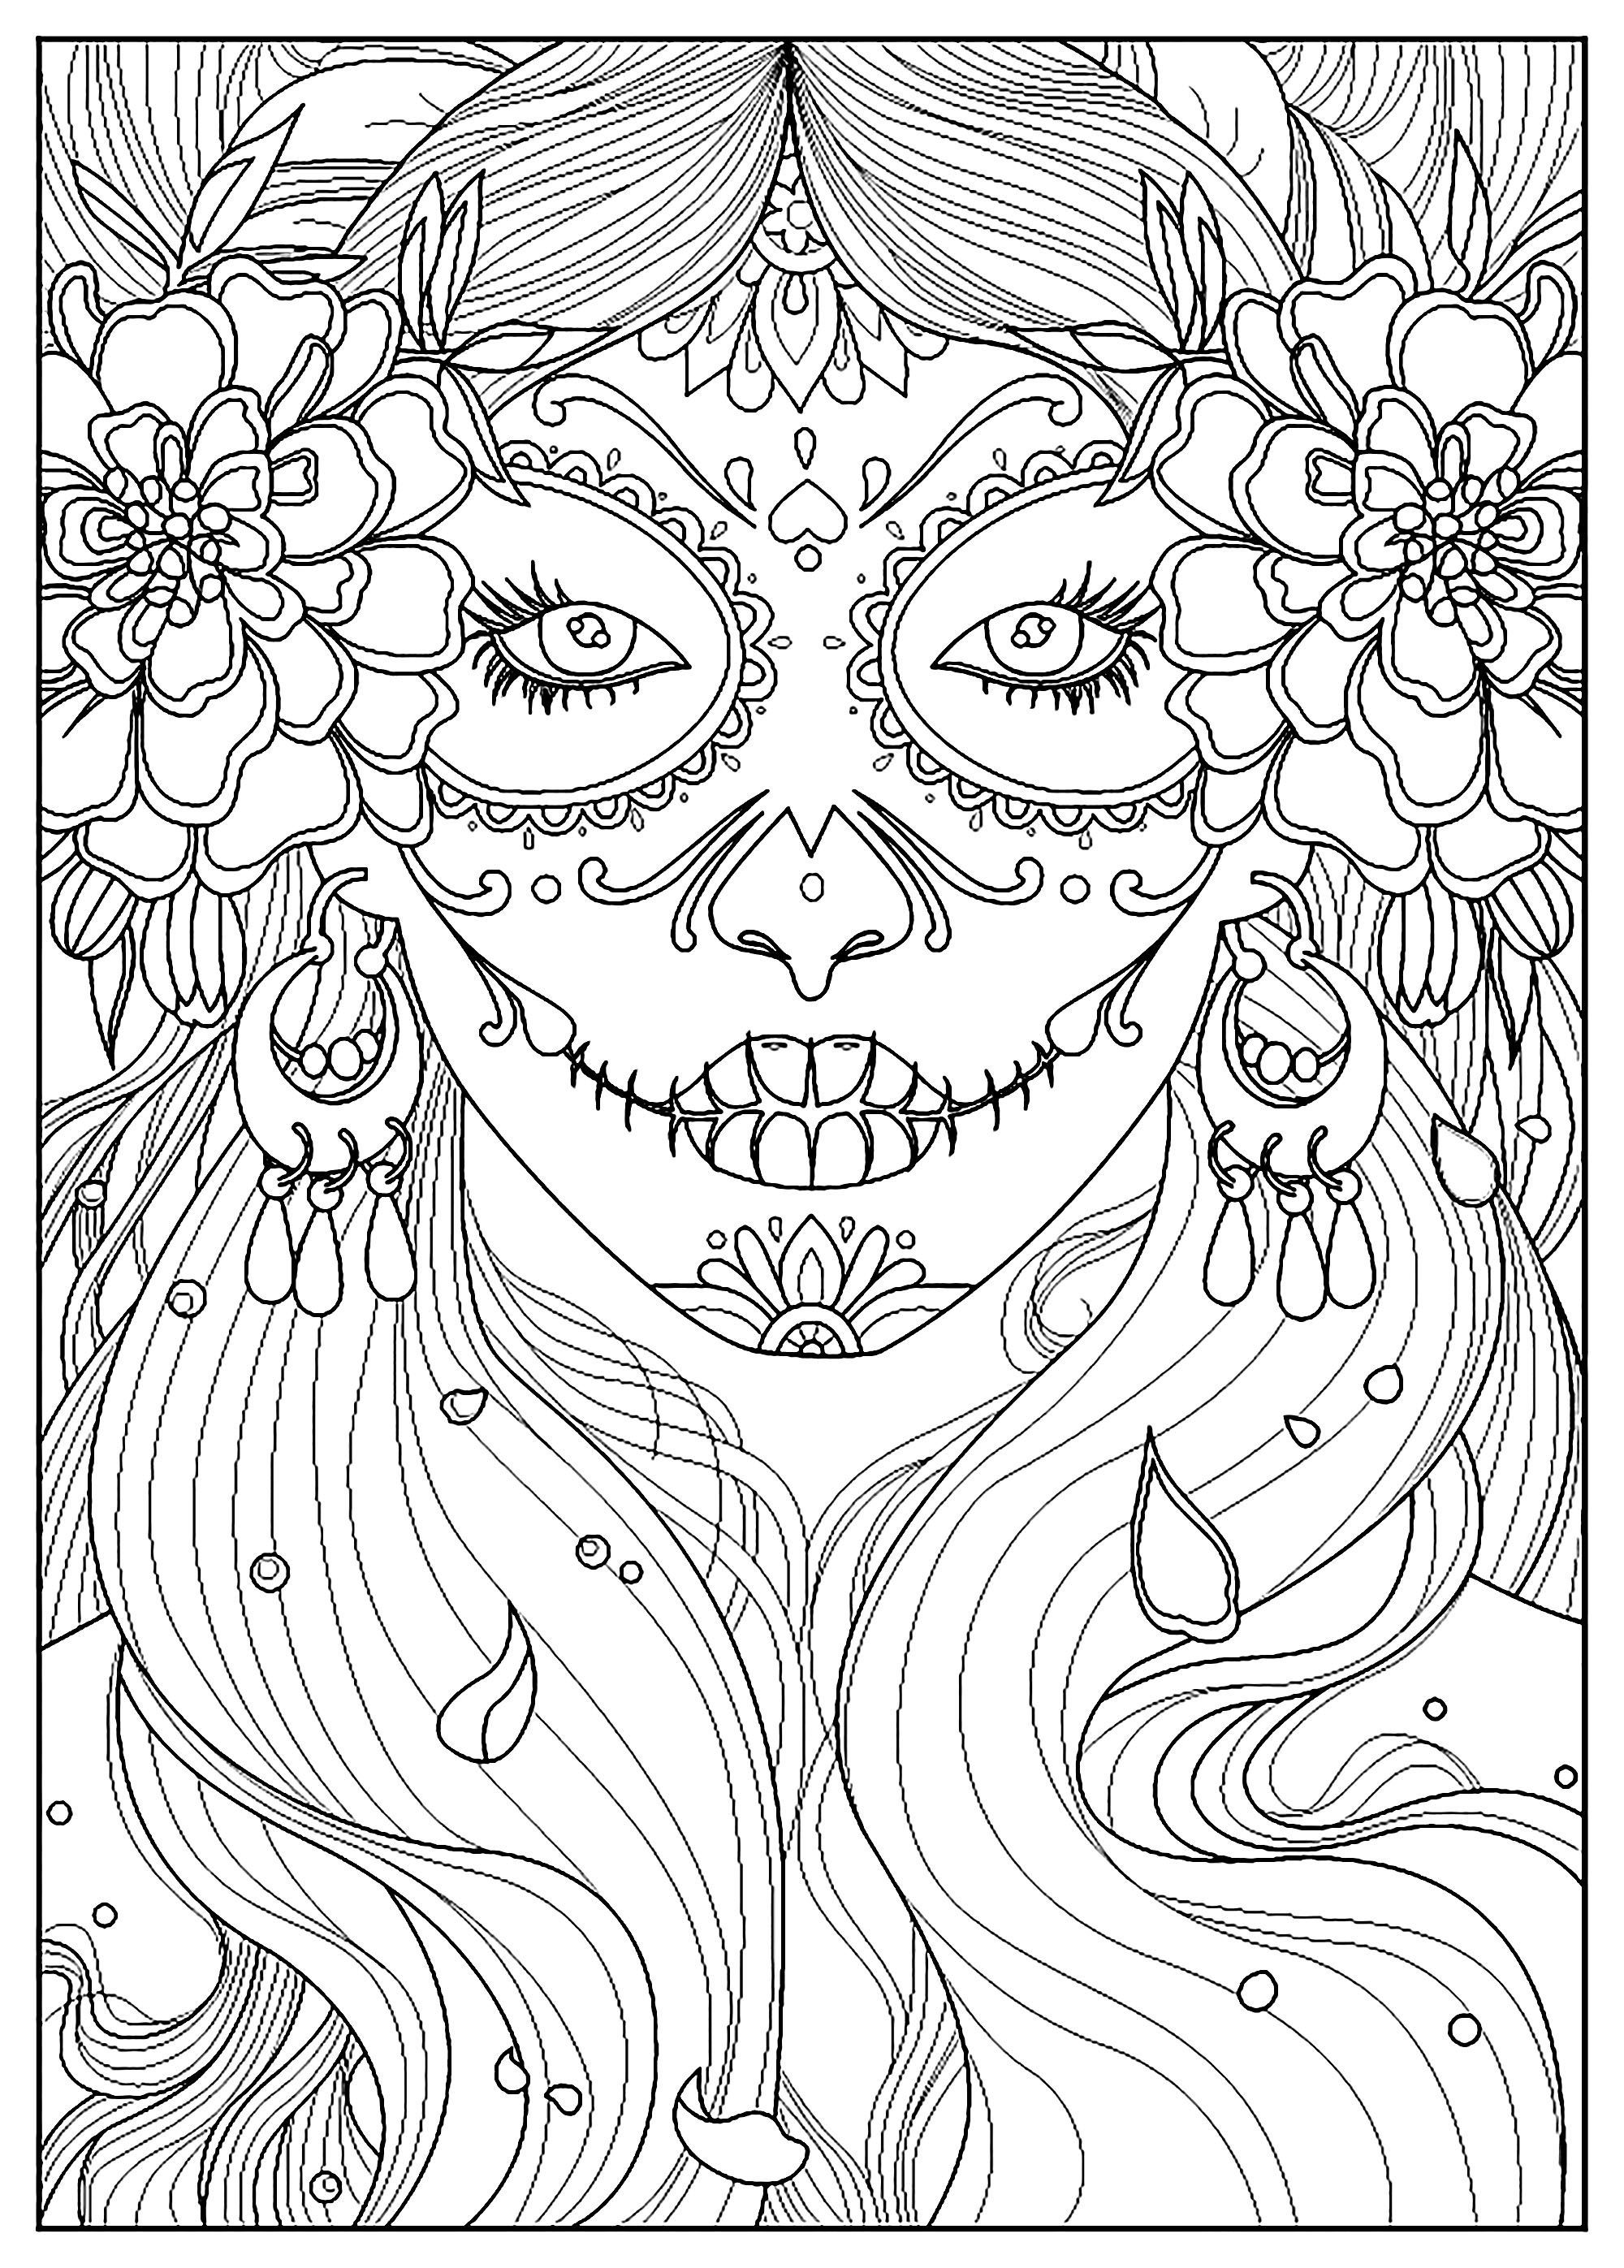 Day of the dead - Day of the dead woman. From the gallery : El Dia De Los Muertos. Artist : Juline. Keywords : Woman. Just Color : Discover all our printable Coloring Pages for Adults, to print or download for free ! #adultcoloringpages